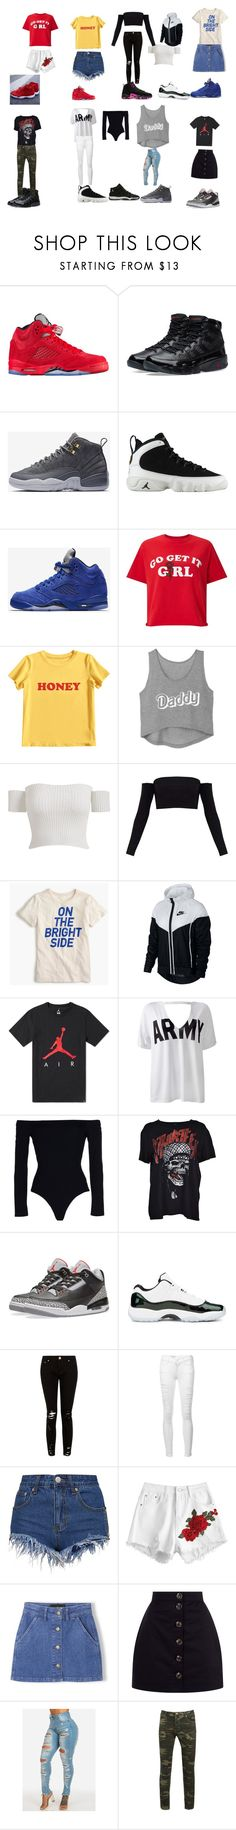 """""""Living the sneaker life .?🤩🔥"""" by shankiahester ❤ liked on Polyvore featuring NIKE, Miss Selfridge, MIEL, Issa, J.Crew, Sans Souci, Kendall + Kylie, R13 and Frame"""